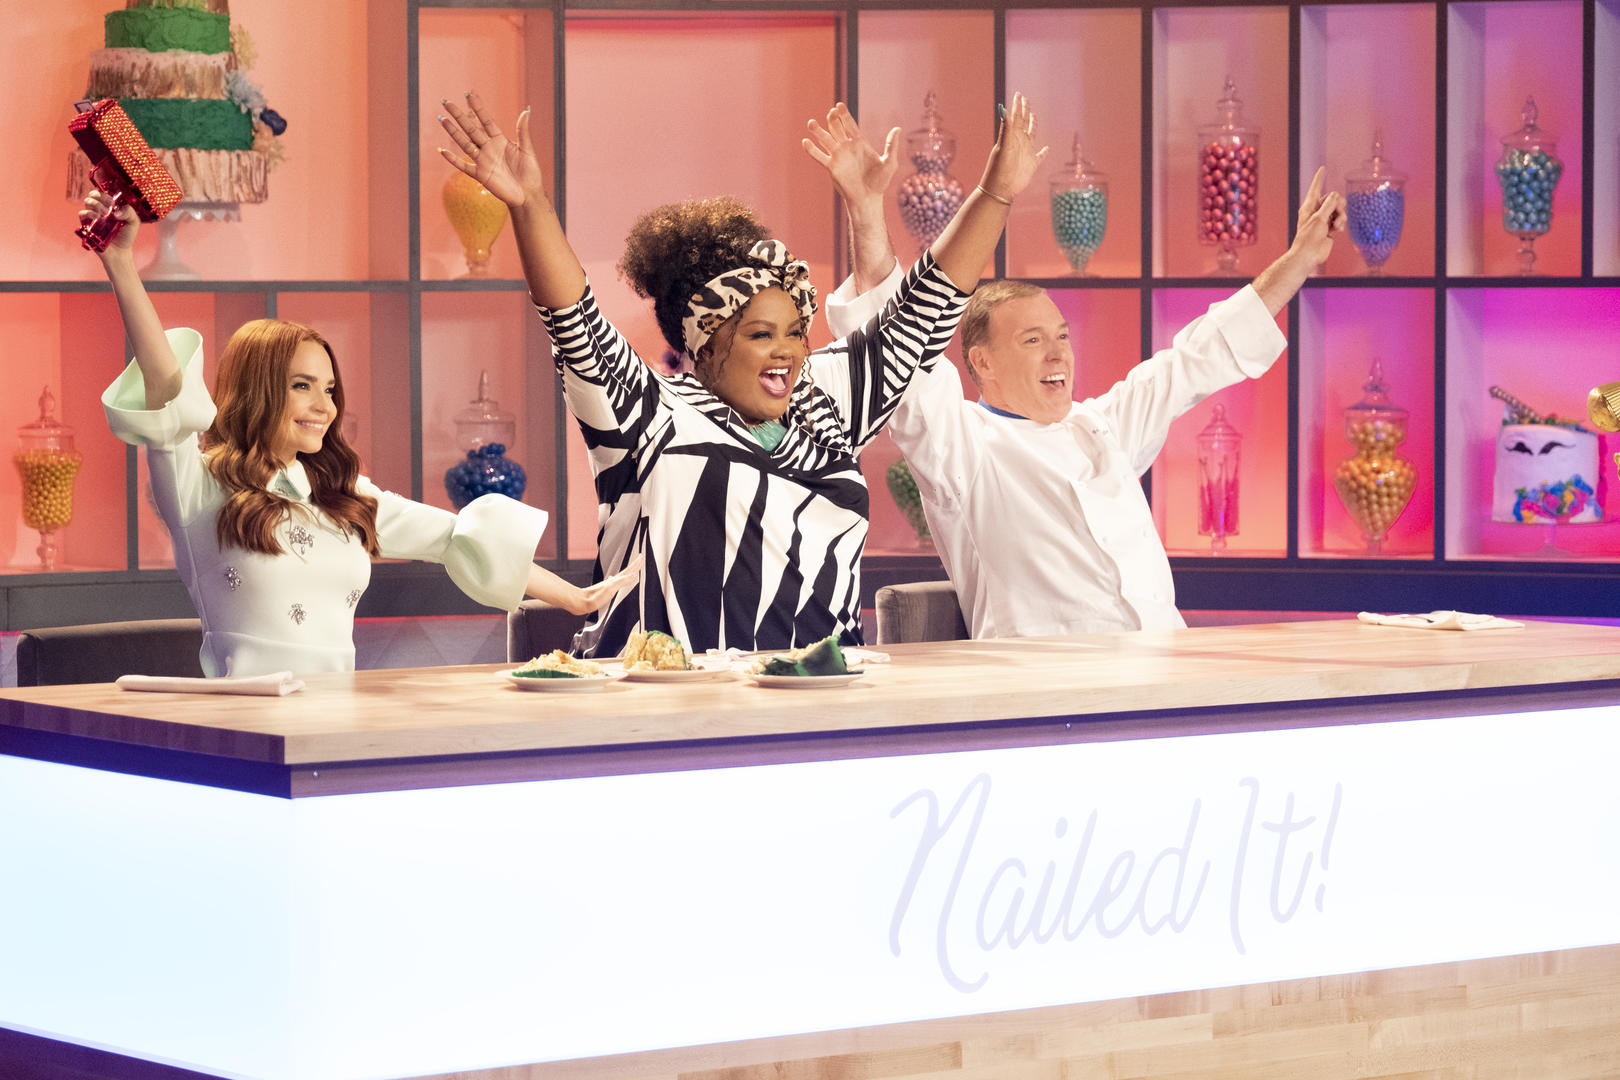 Nailed it!, Temporada 3